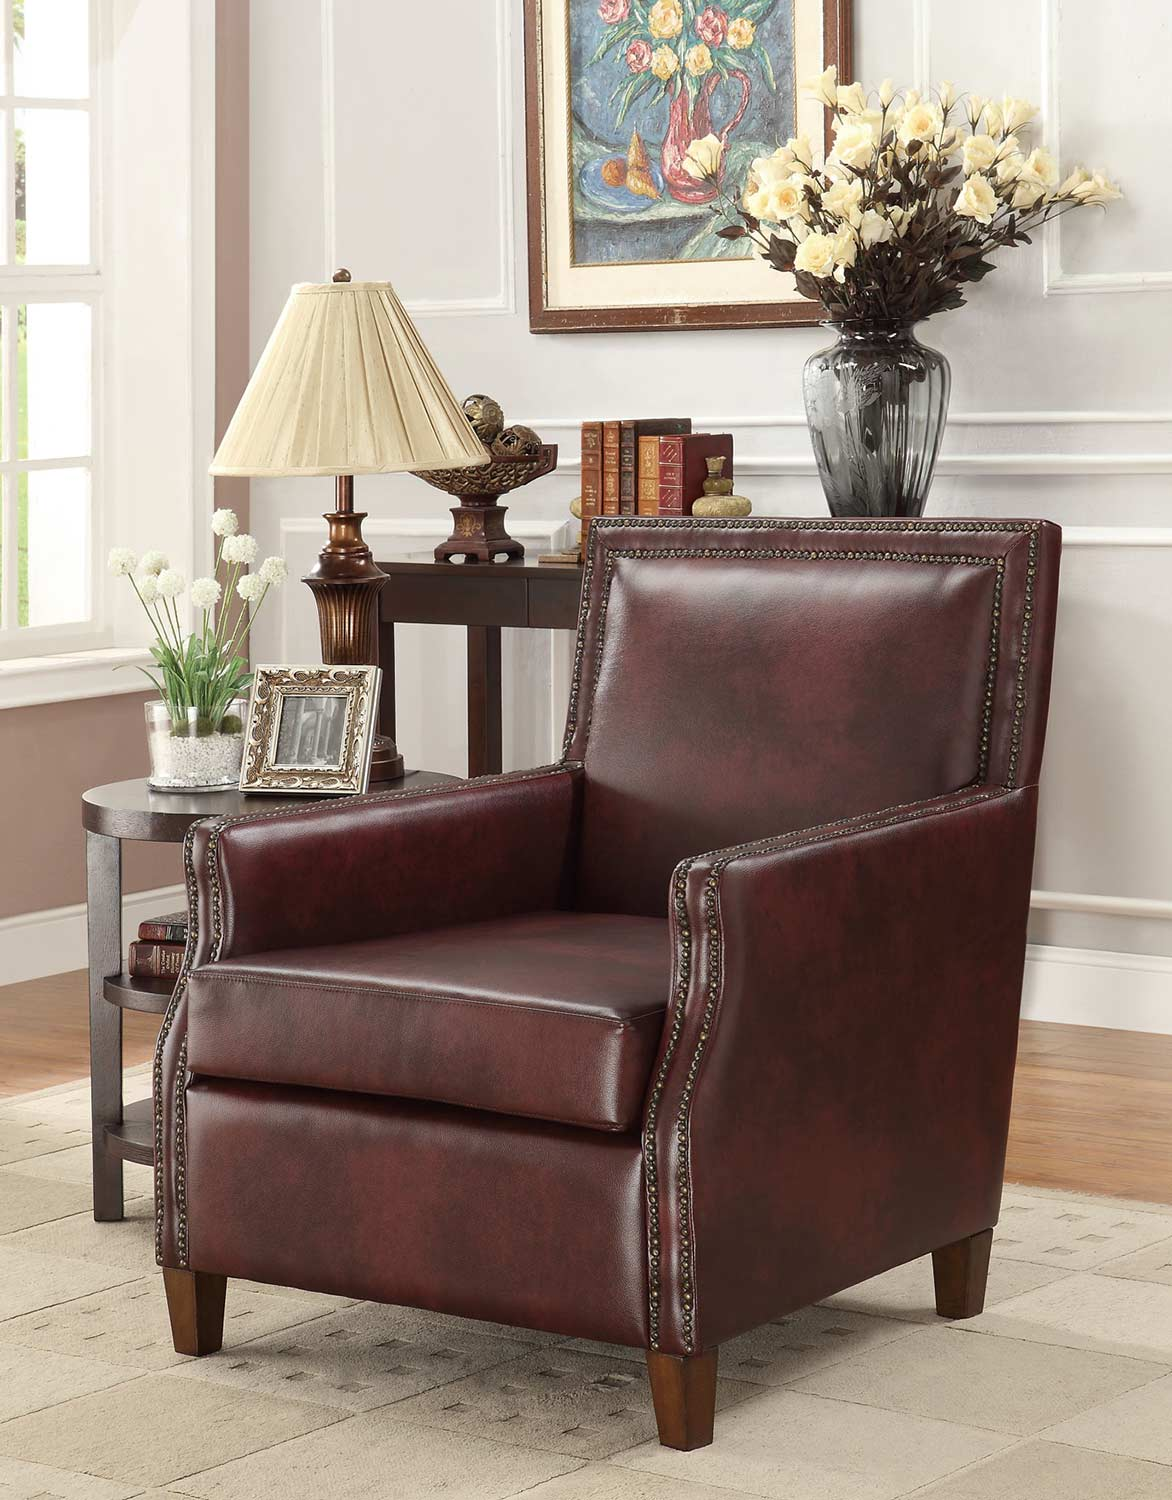 Coaster 902157 Accent Chair - Brown